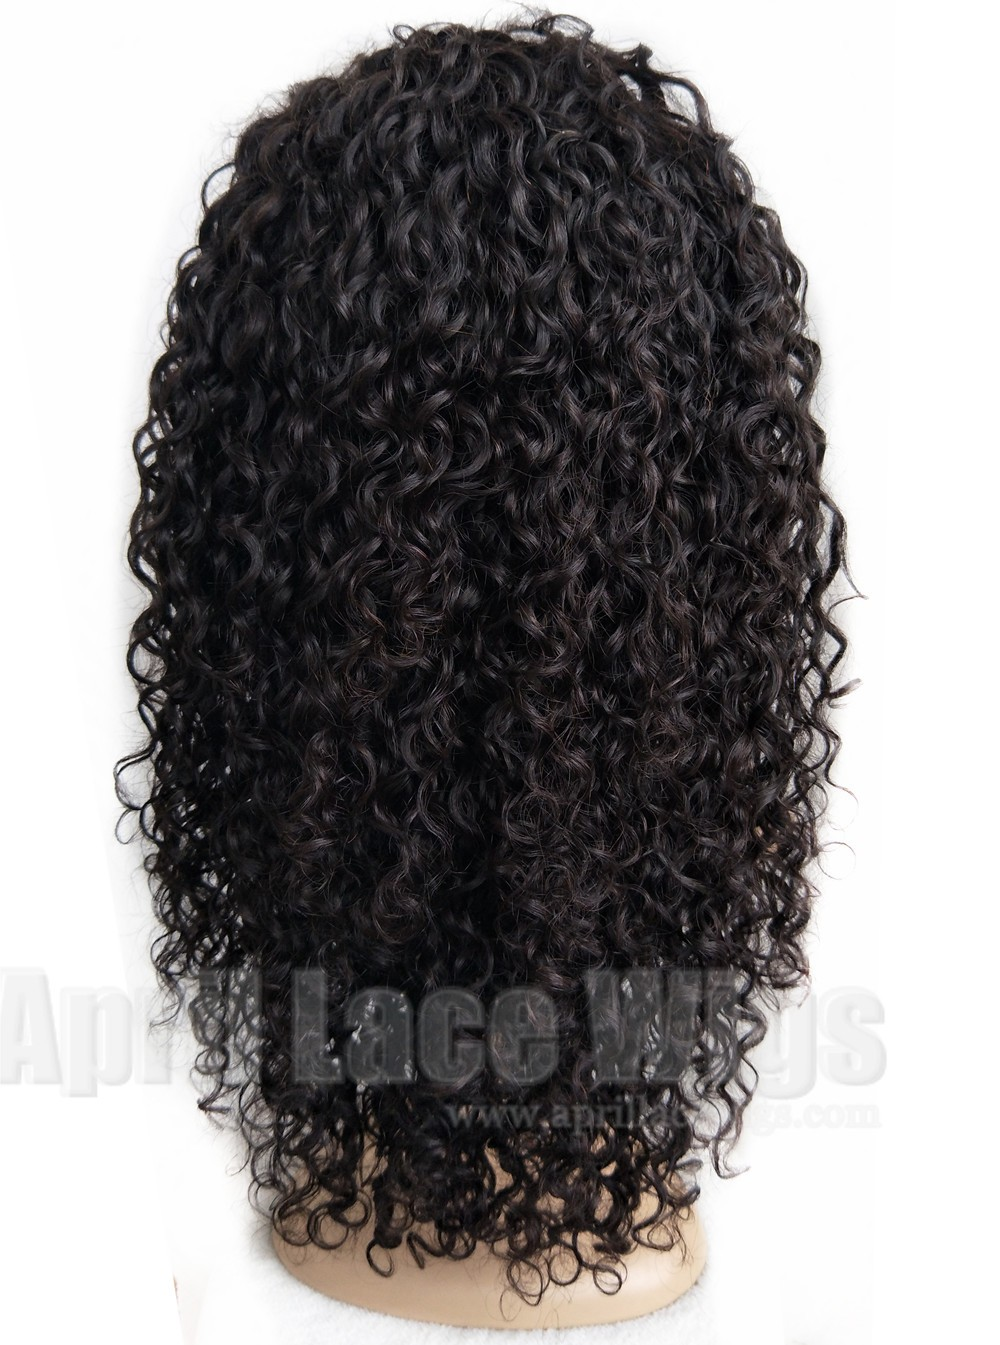 deep curly 360 wig preplucked hairline